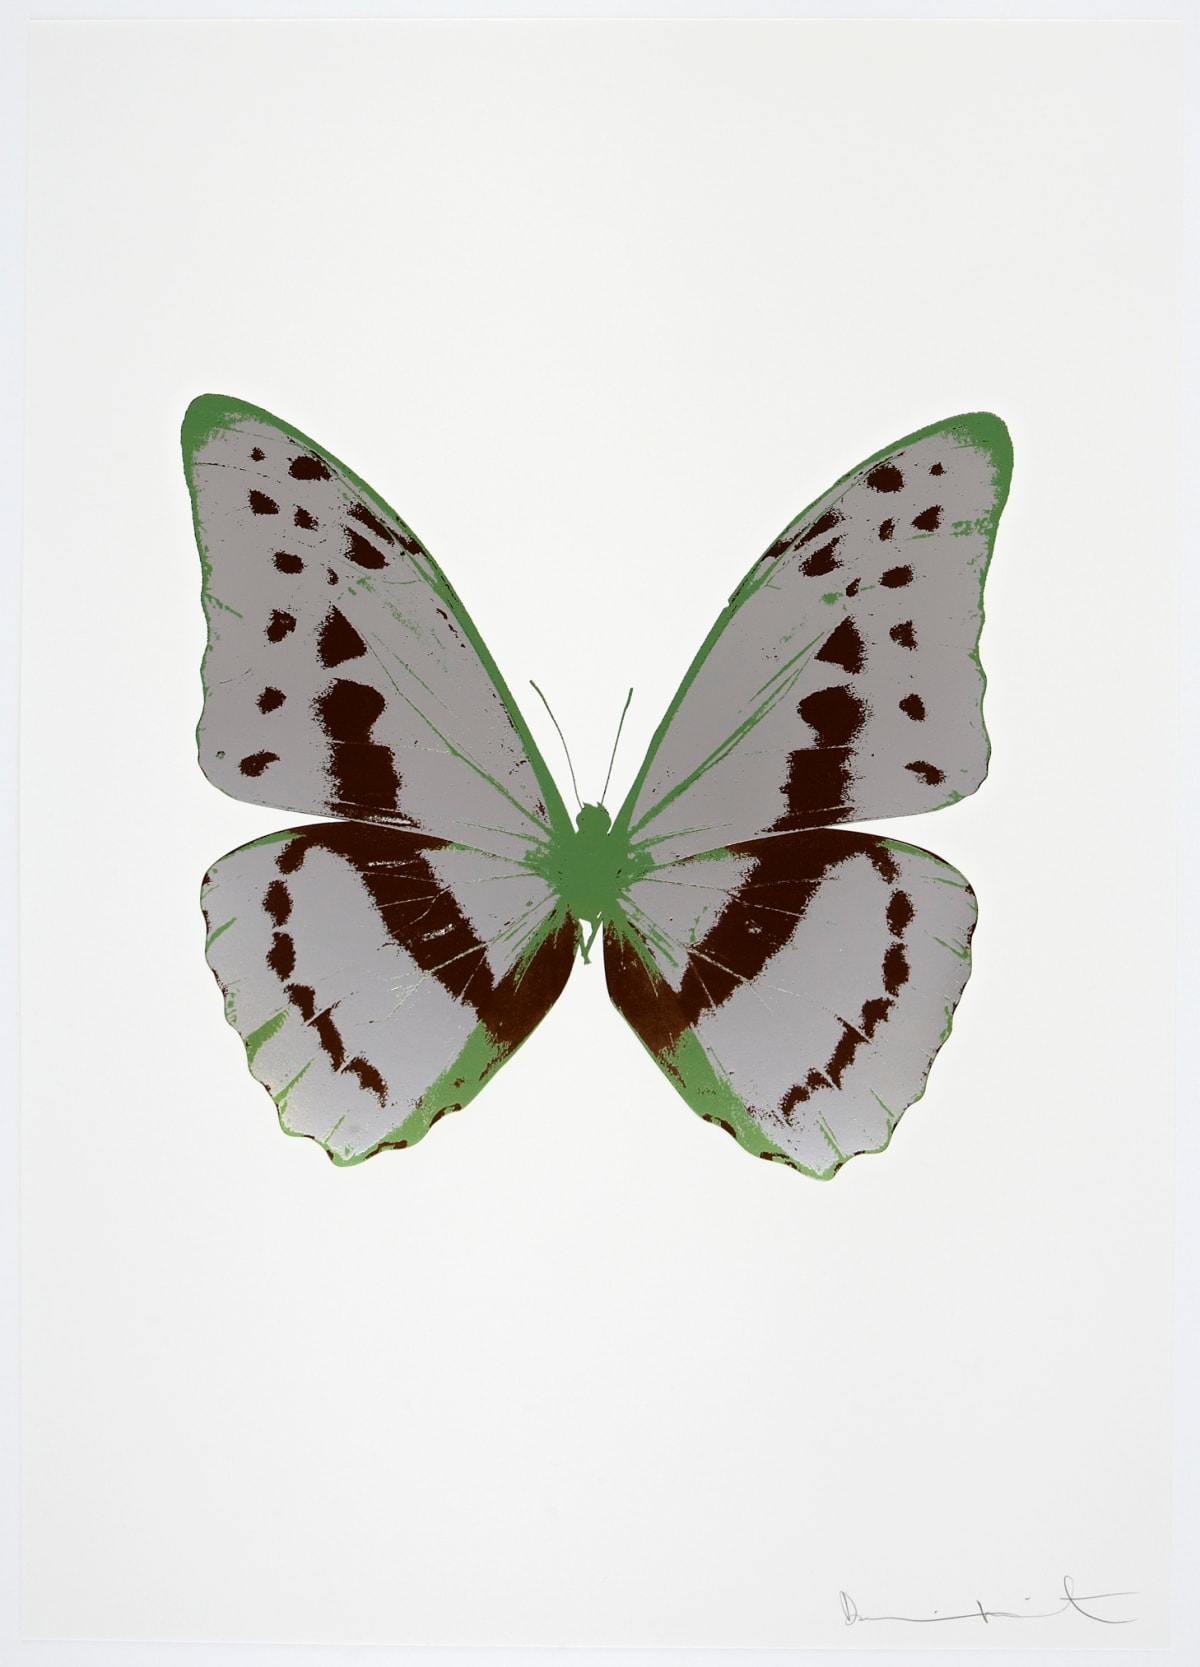 Damien Hirst The Souls III - Sliver Gloss/Chocolate/Leaf Green Damien Hirst butterfly foil print for sale Damien Hirst print for sale , 2010 3 colour foil block on 300gsm Arches 88 archival paper. Signed and numbered. Published by Paul Stolper and Other Criteria 72 x 51cm OC7948 / 660-51 Edition of 15